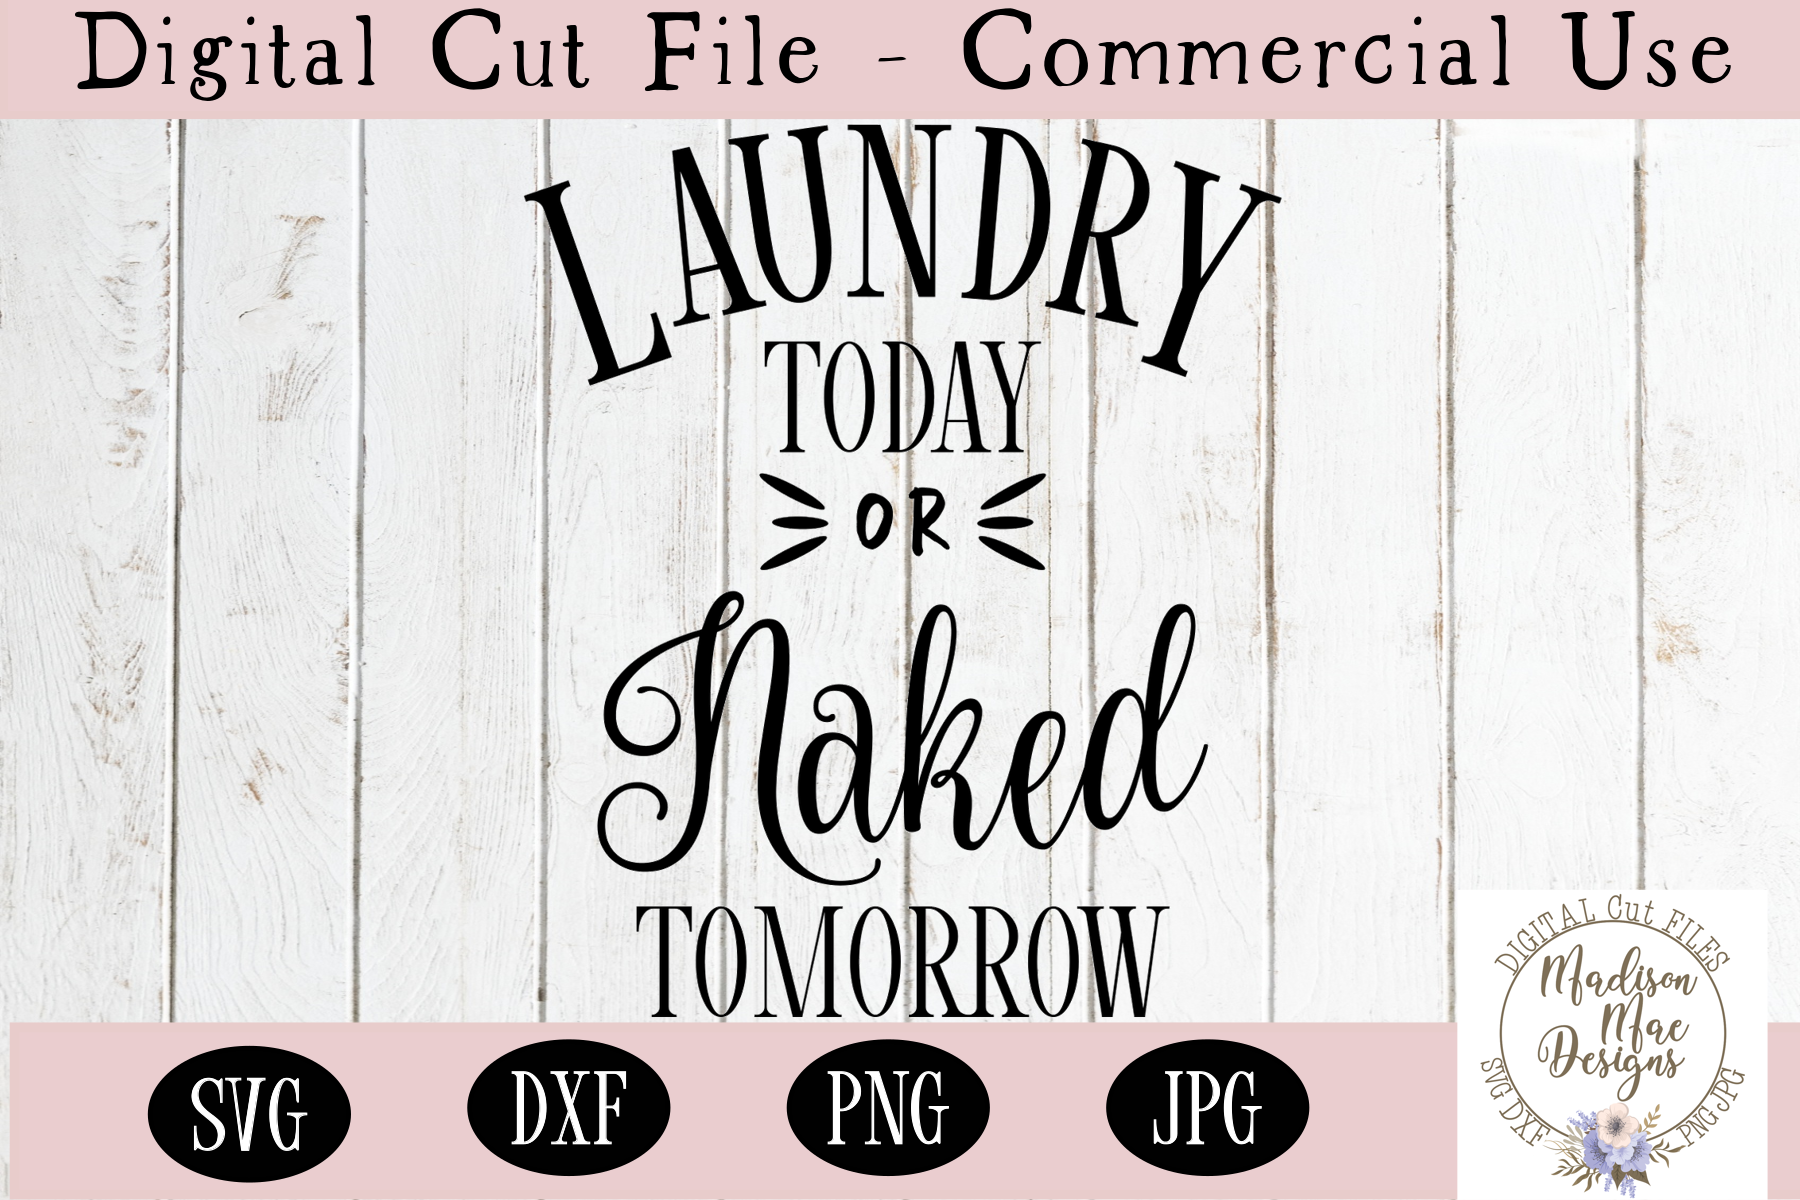 Laundry today or naked tomorrow, SVG, DXF, PNG